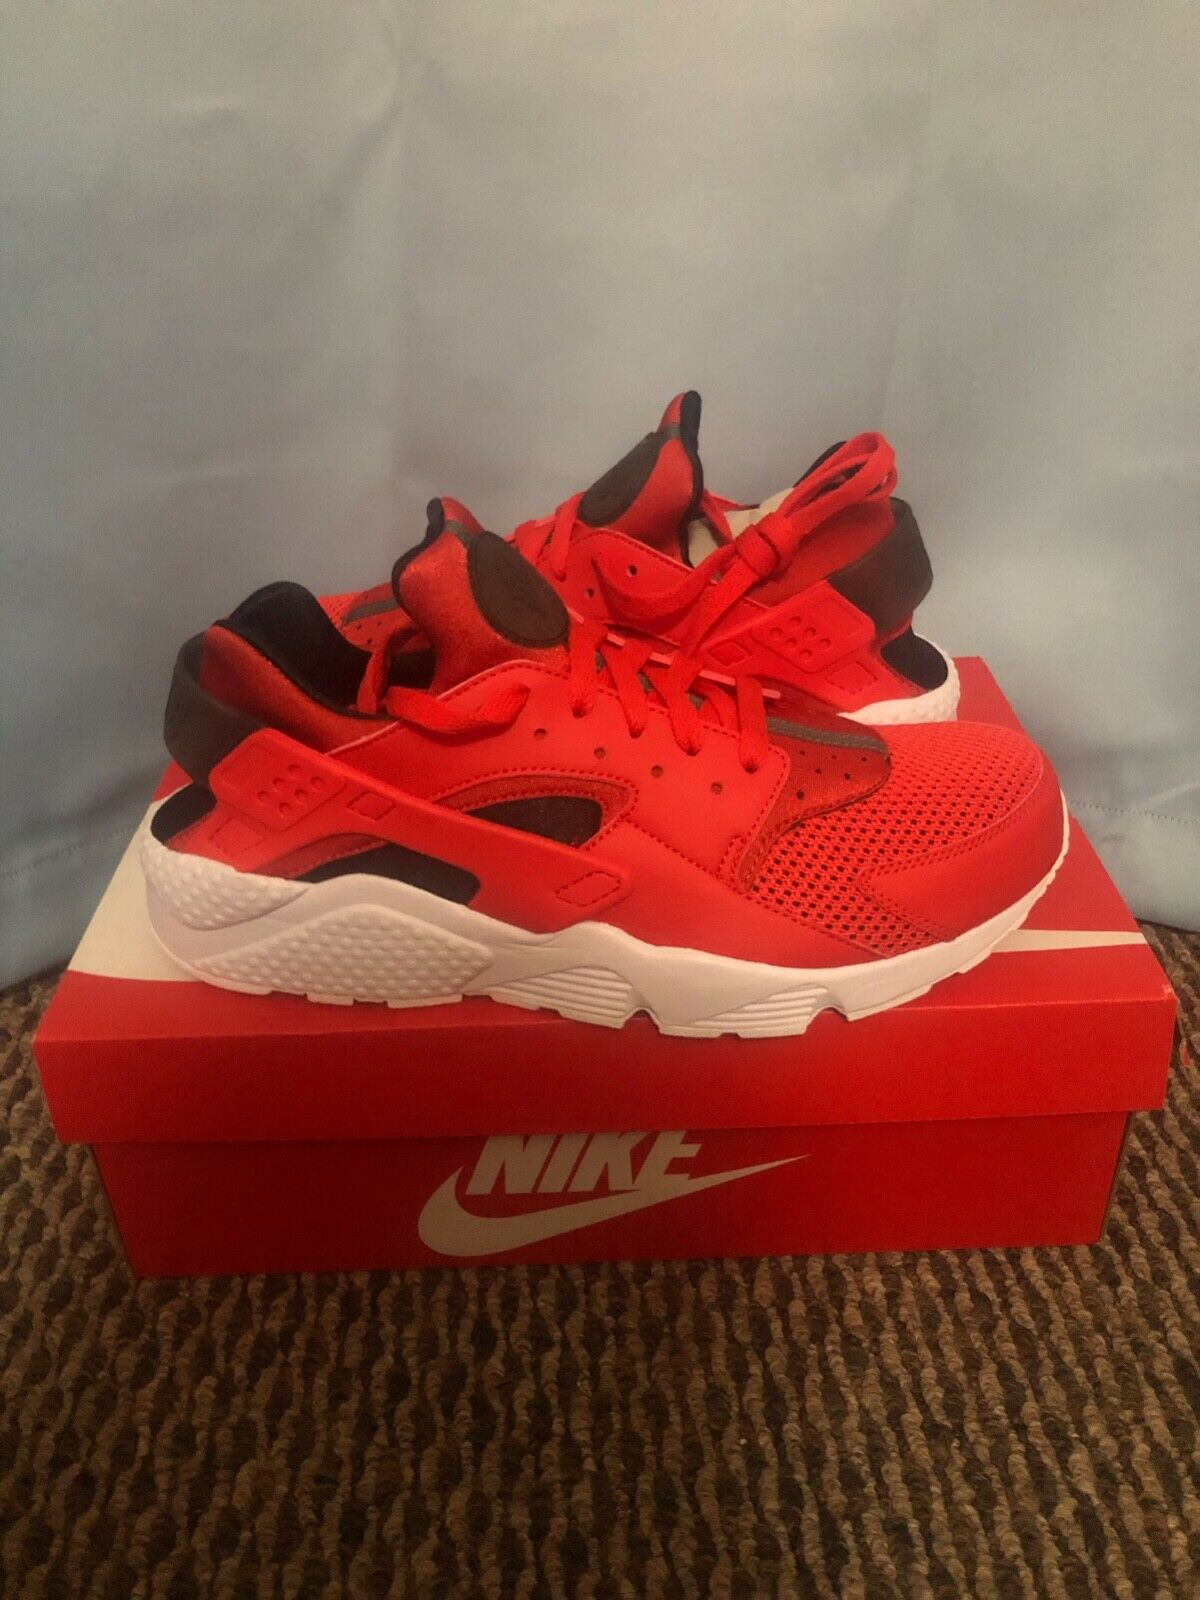 New Nike Air Huarache Run Red Black White Men's Size 12 Running shoes